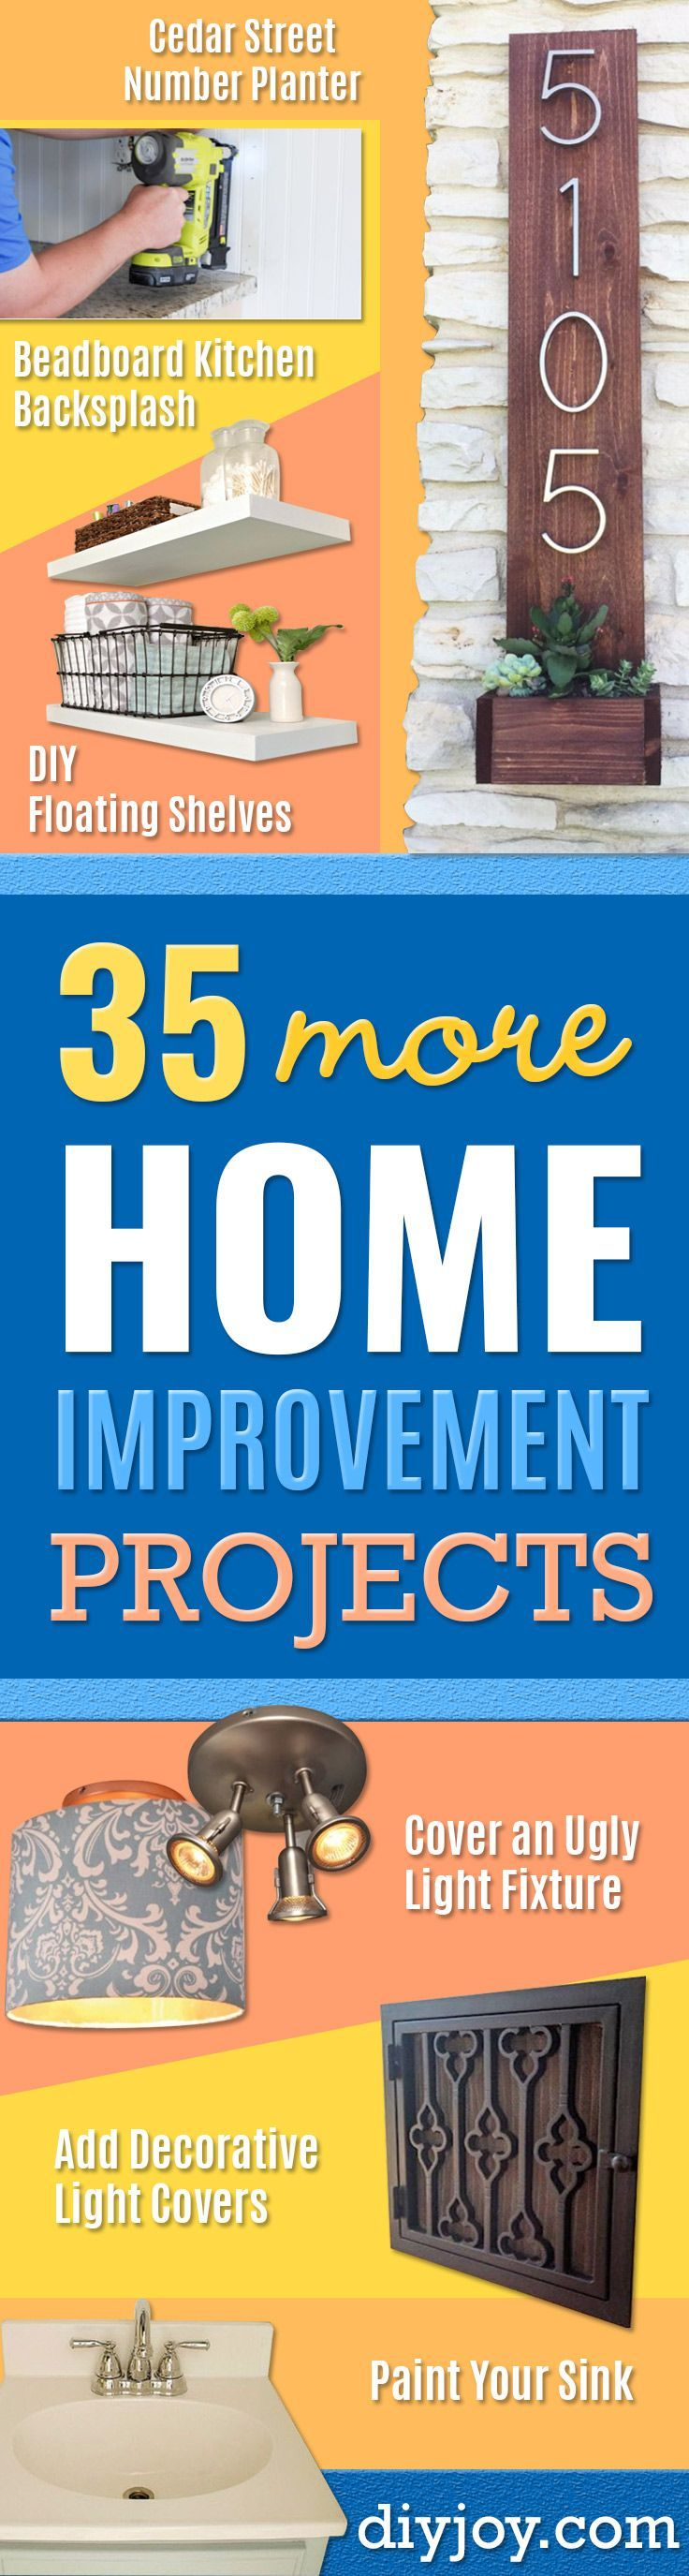 DIY Home Improvement Projects on a Budget – Cool Handyman Hacks, … #budget #coole #a #hacks # handyman